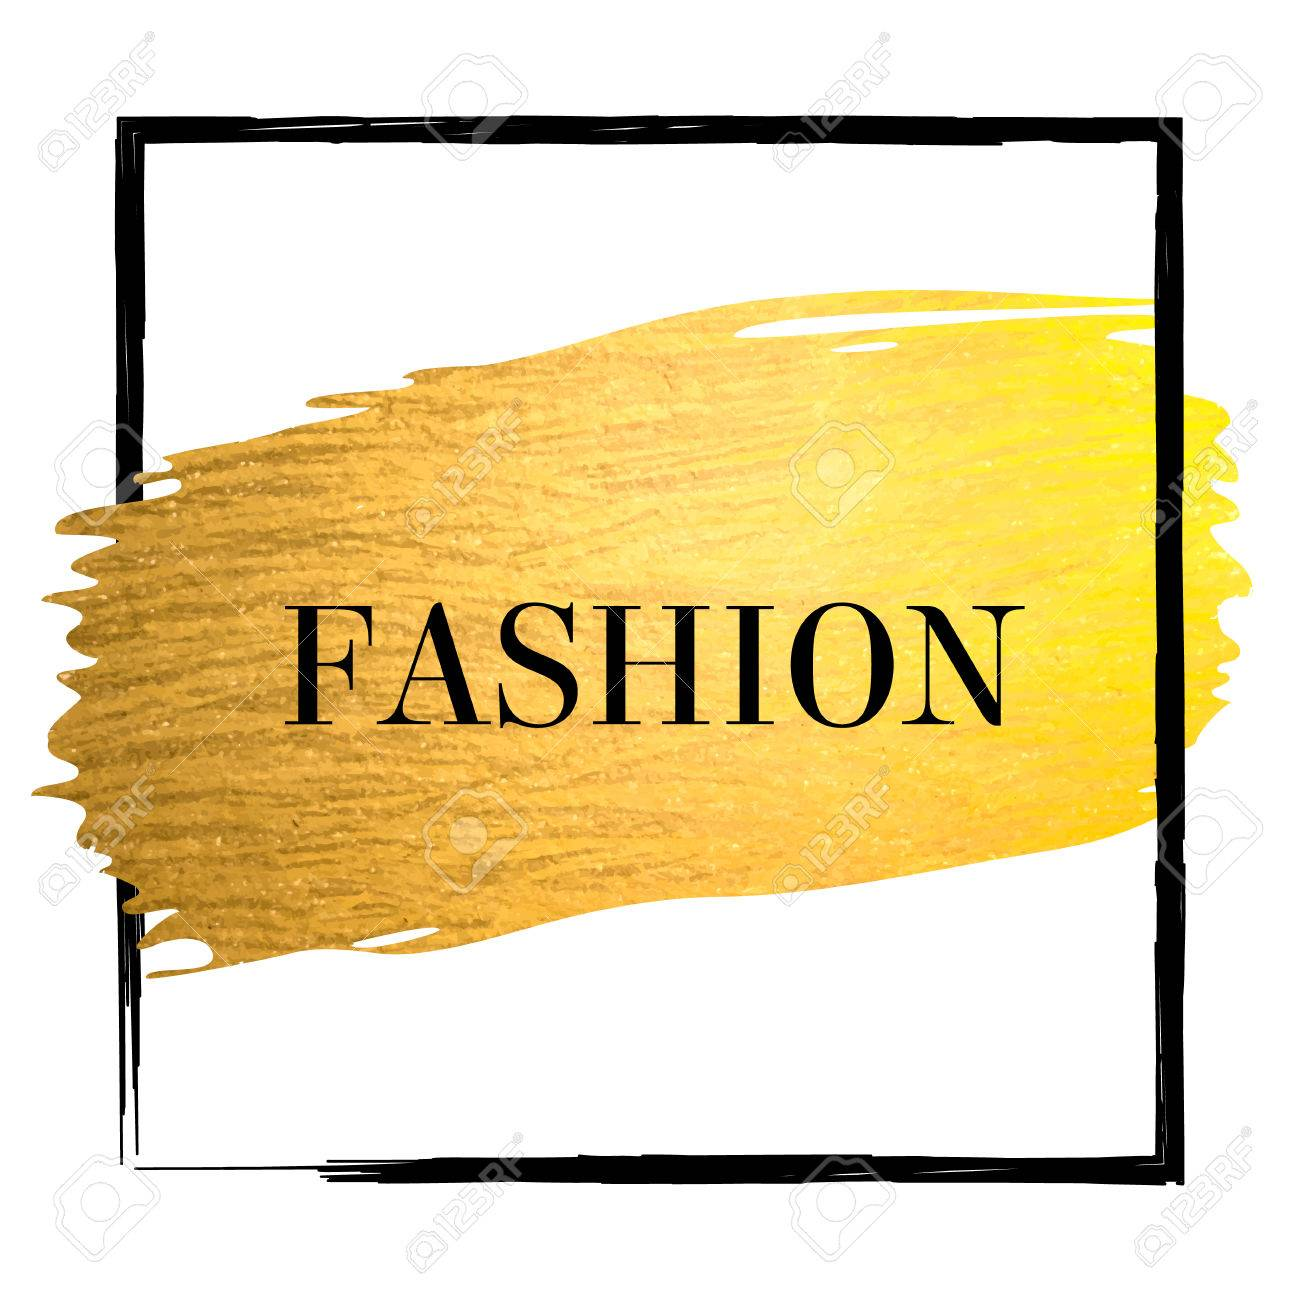 Golden Paint Stroke With Black Border Frame And Text Fashion